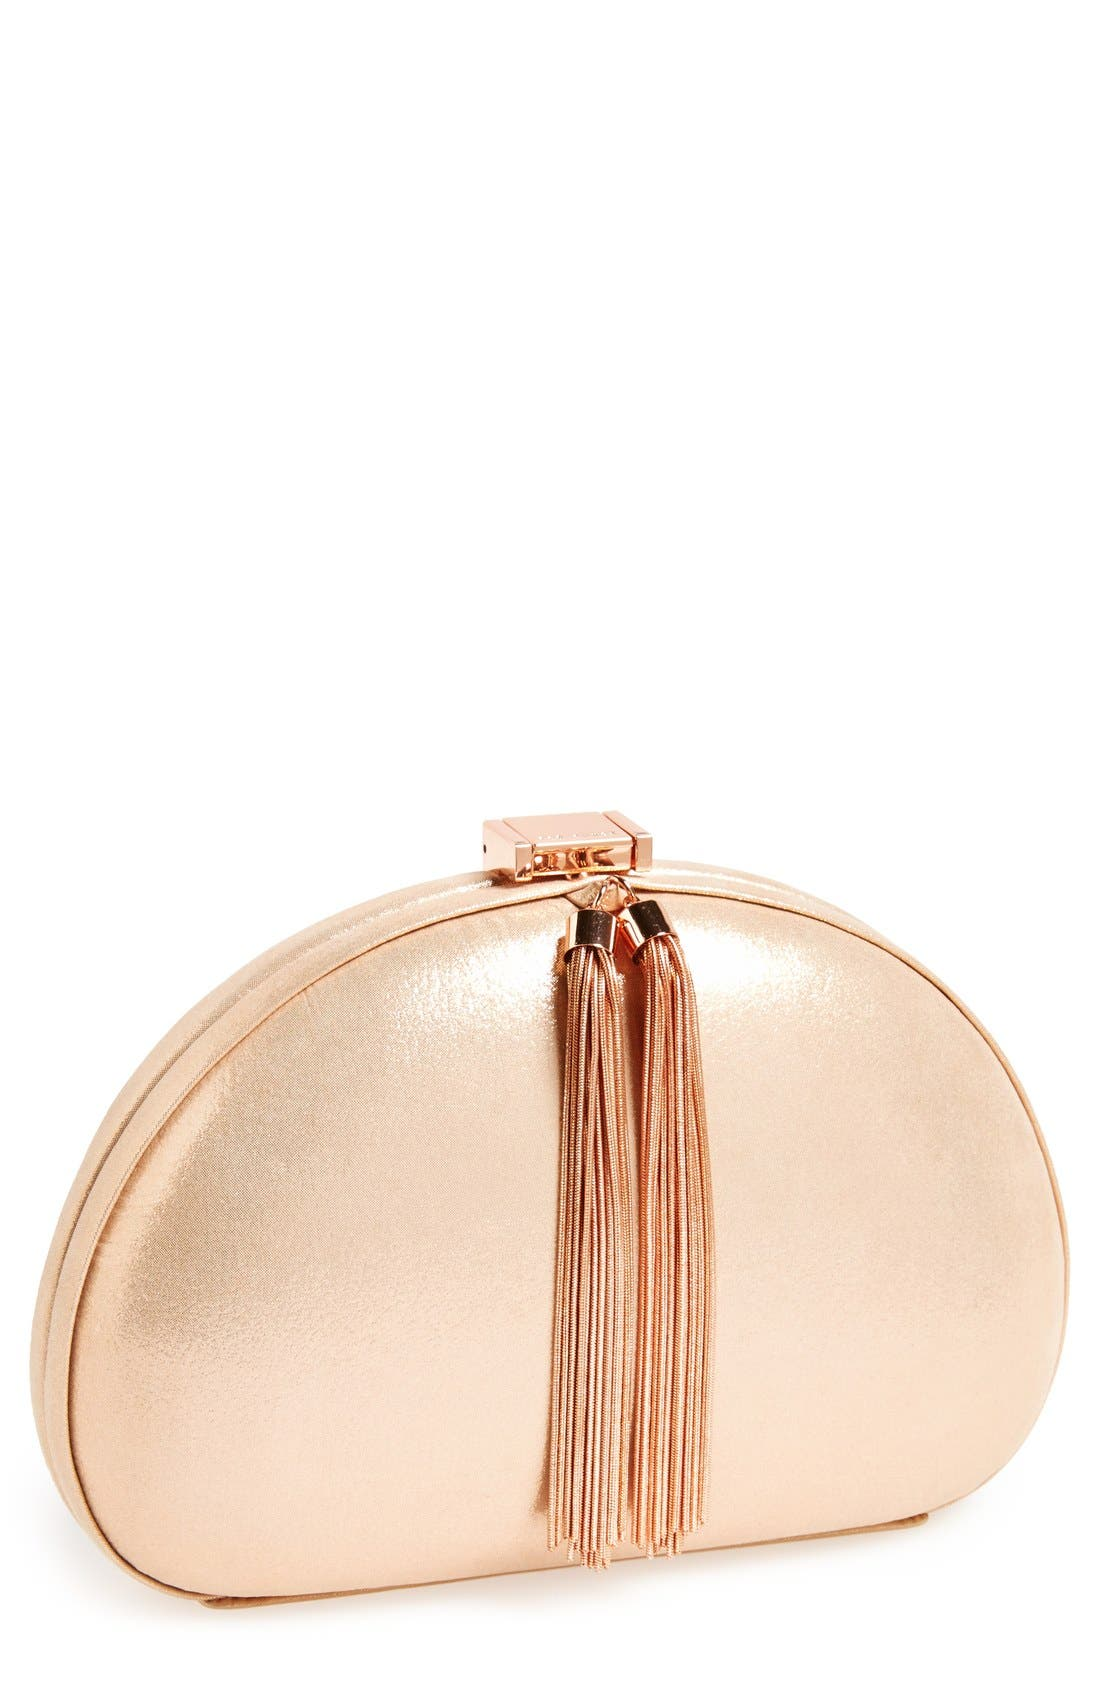 Main Image - Ted Baker London Rounded Tassel Clutch